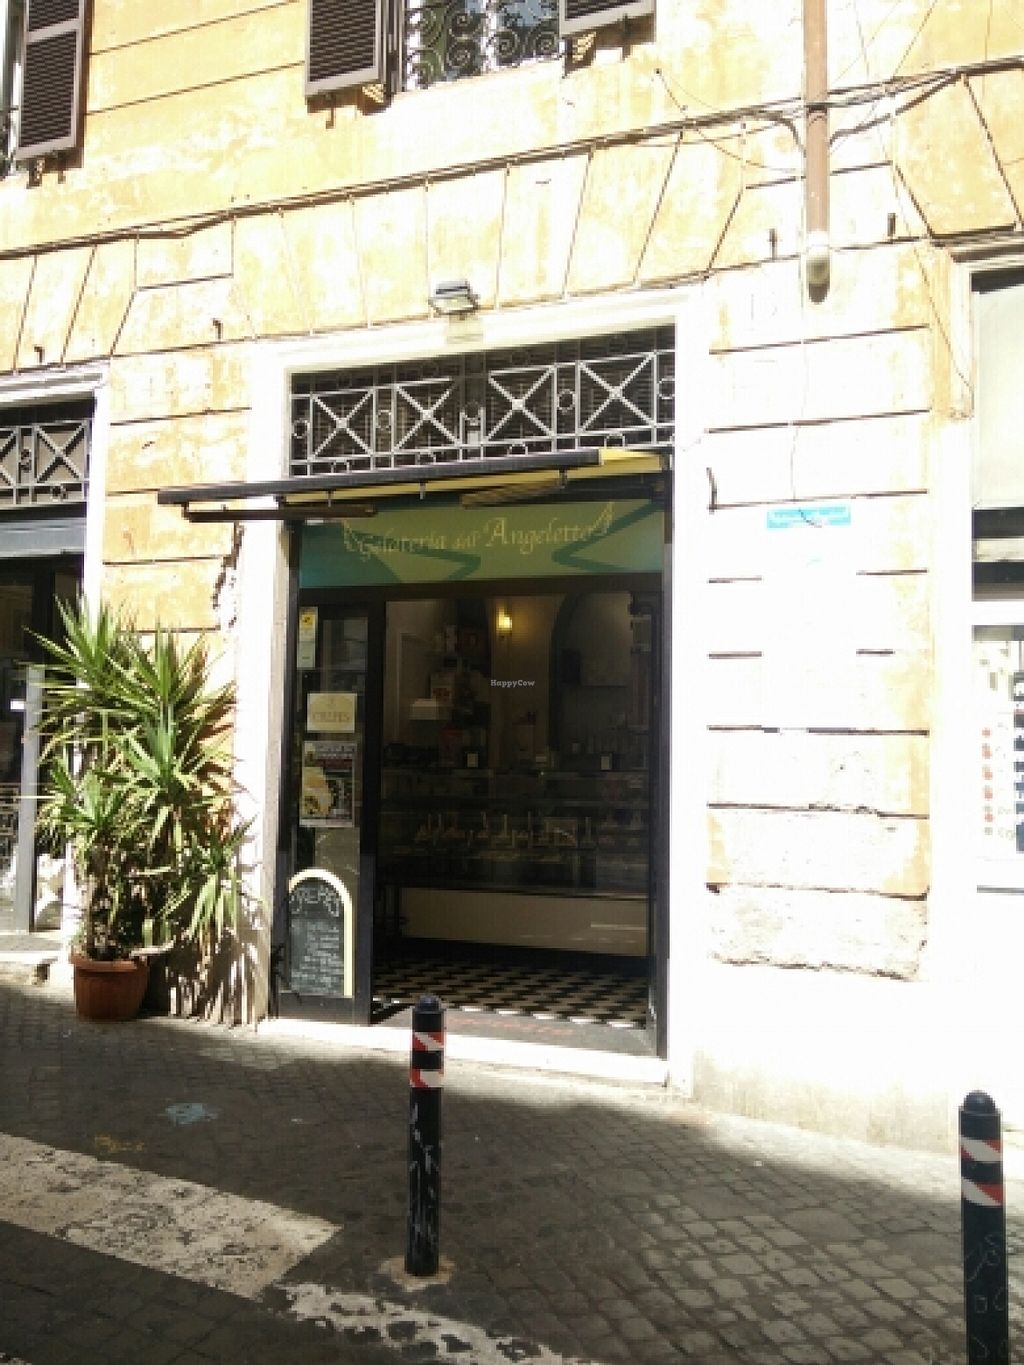 """Photo of Gelateria dell Angeletto  by <a href=""""/members/profile/Meaks"""">Meaks</a> <br/>Outside <br/> May 25, 2016  - <a href='/contact/abuse/image/56745/150759'>Report</a>"""